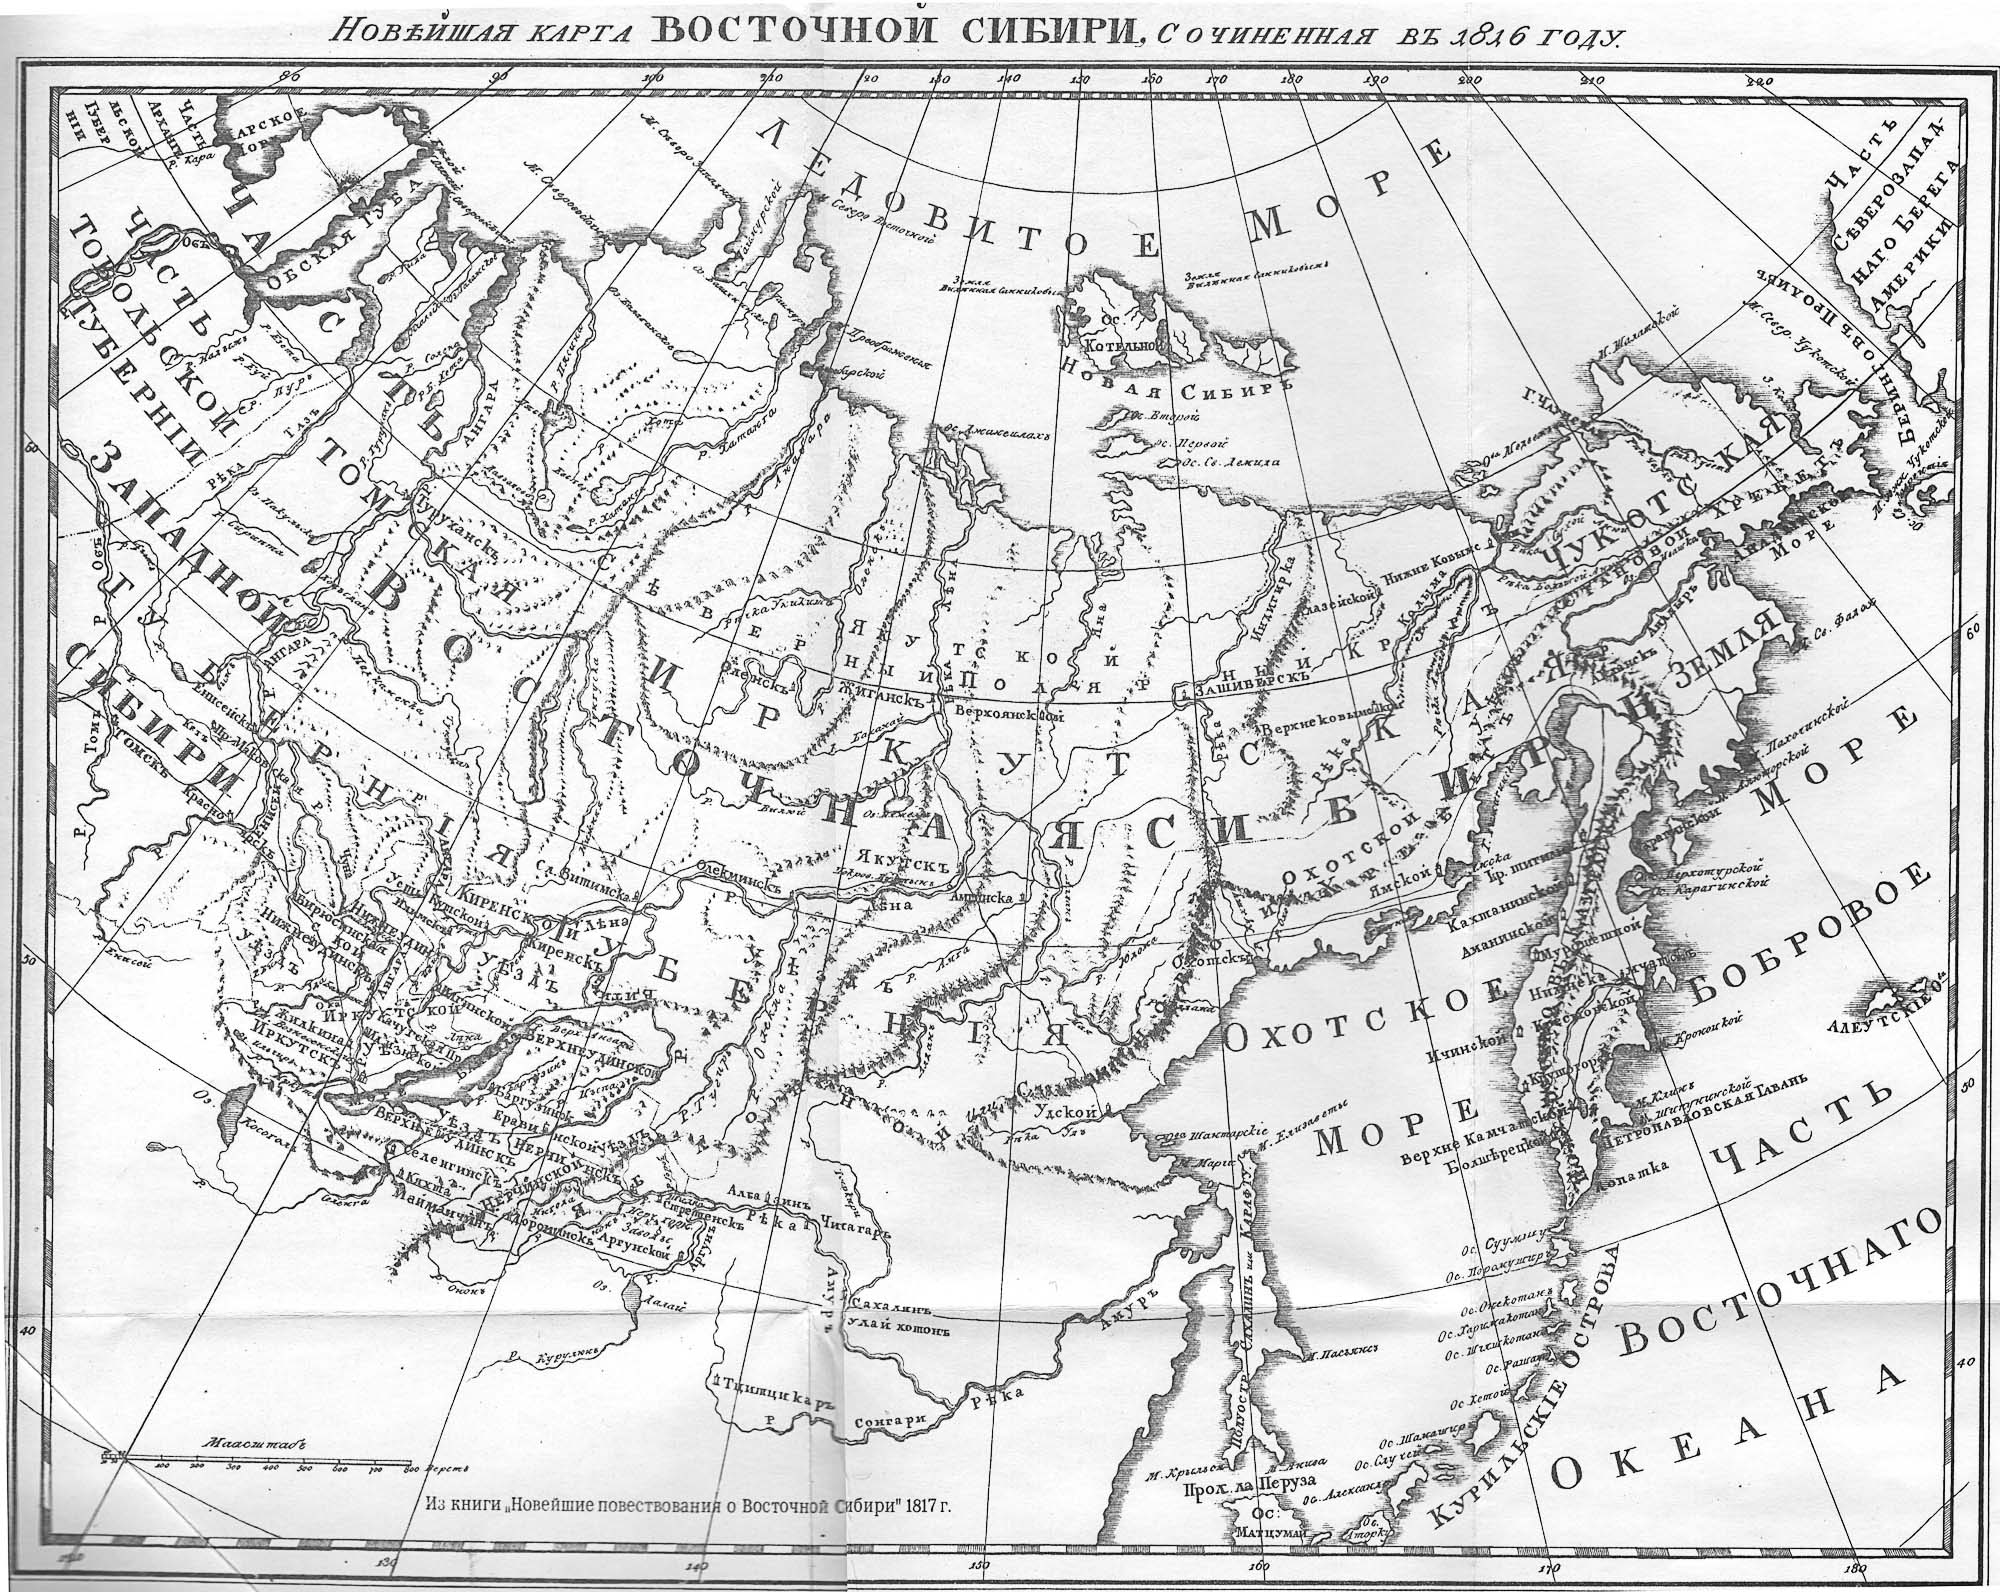 Old map of Siberia with the Far East 1816